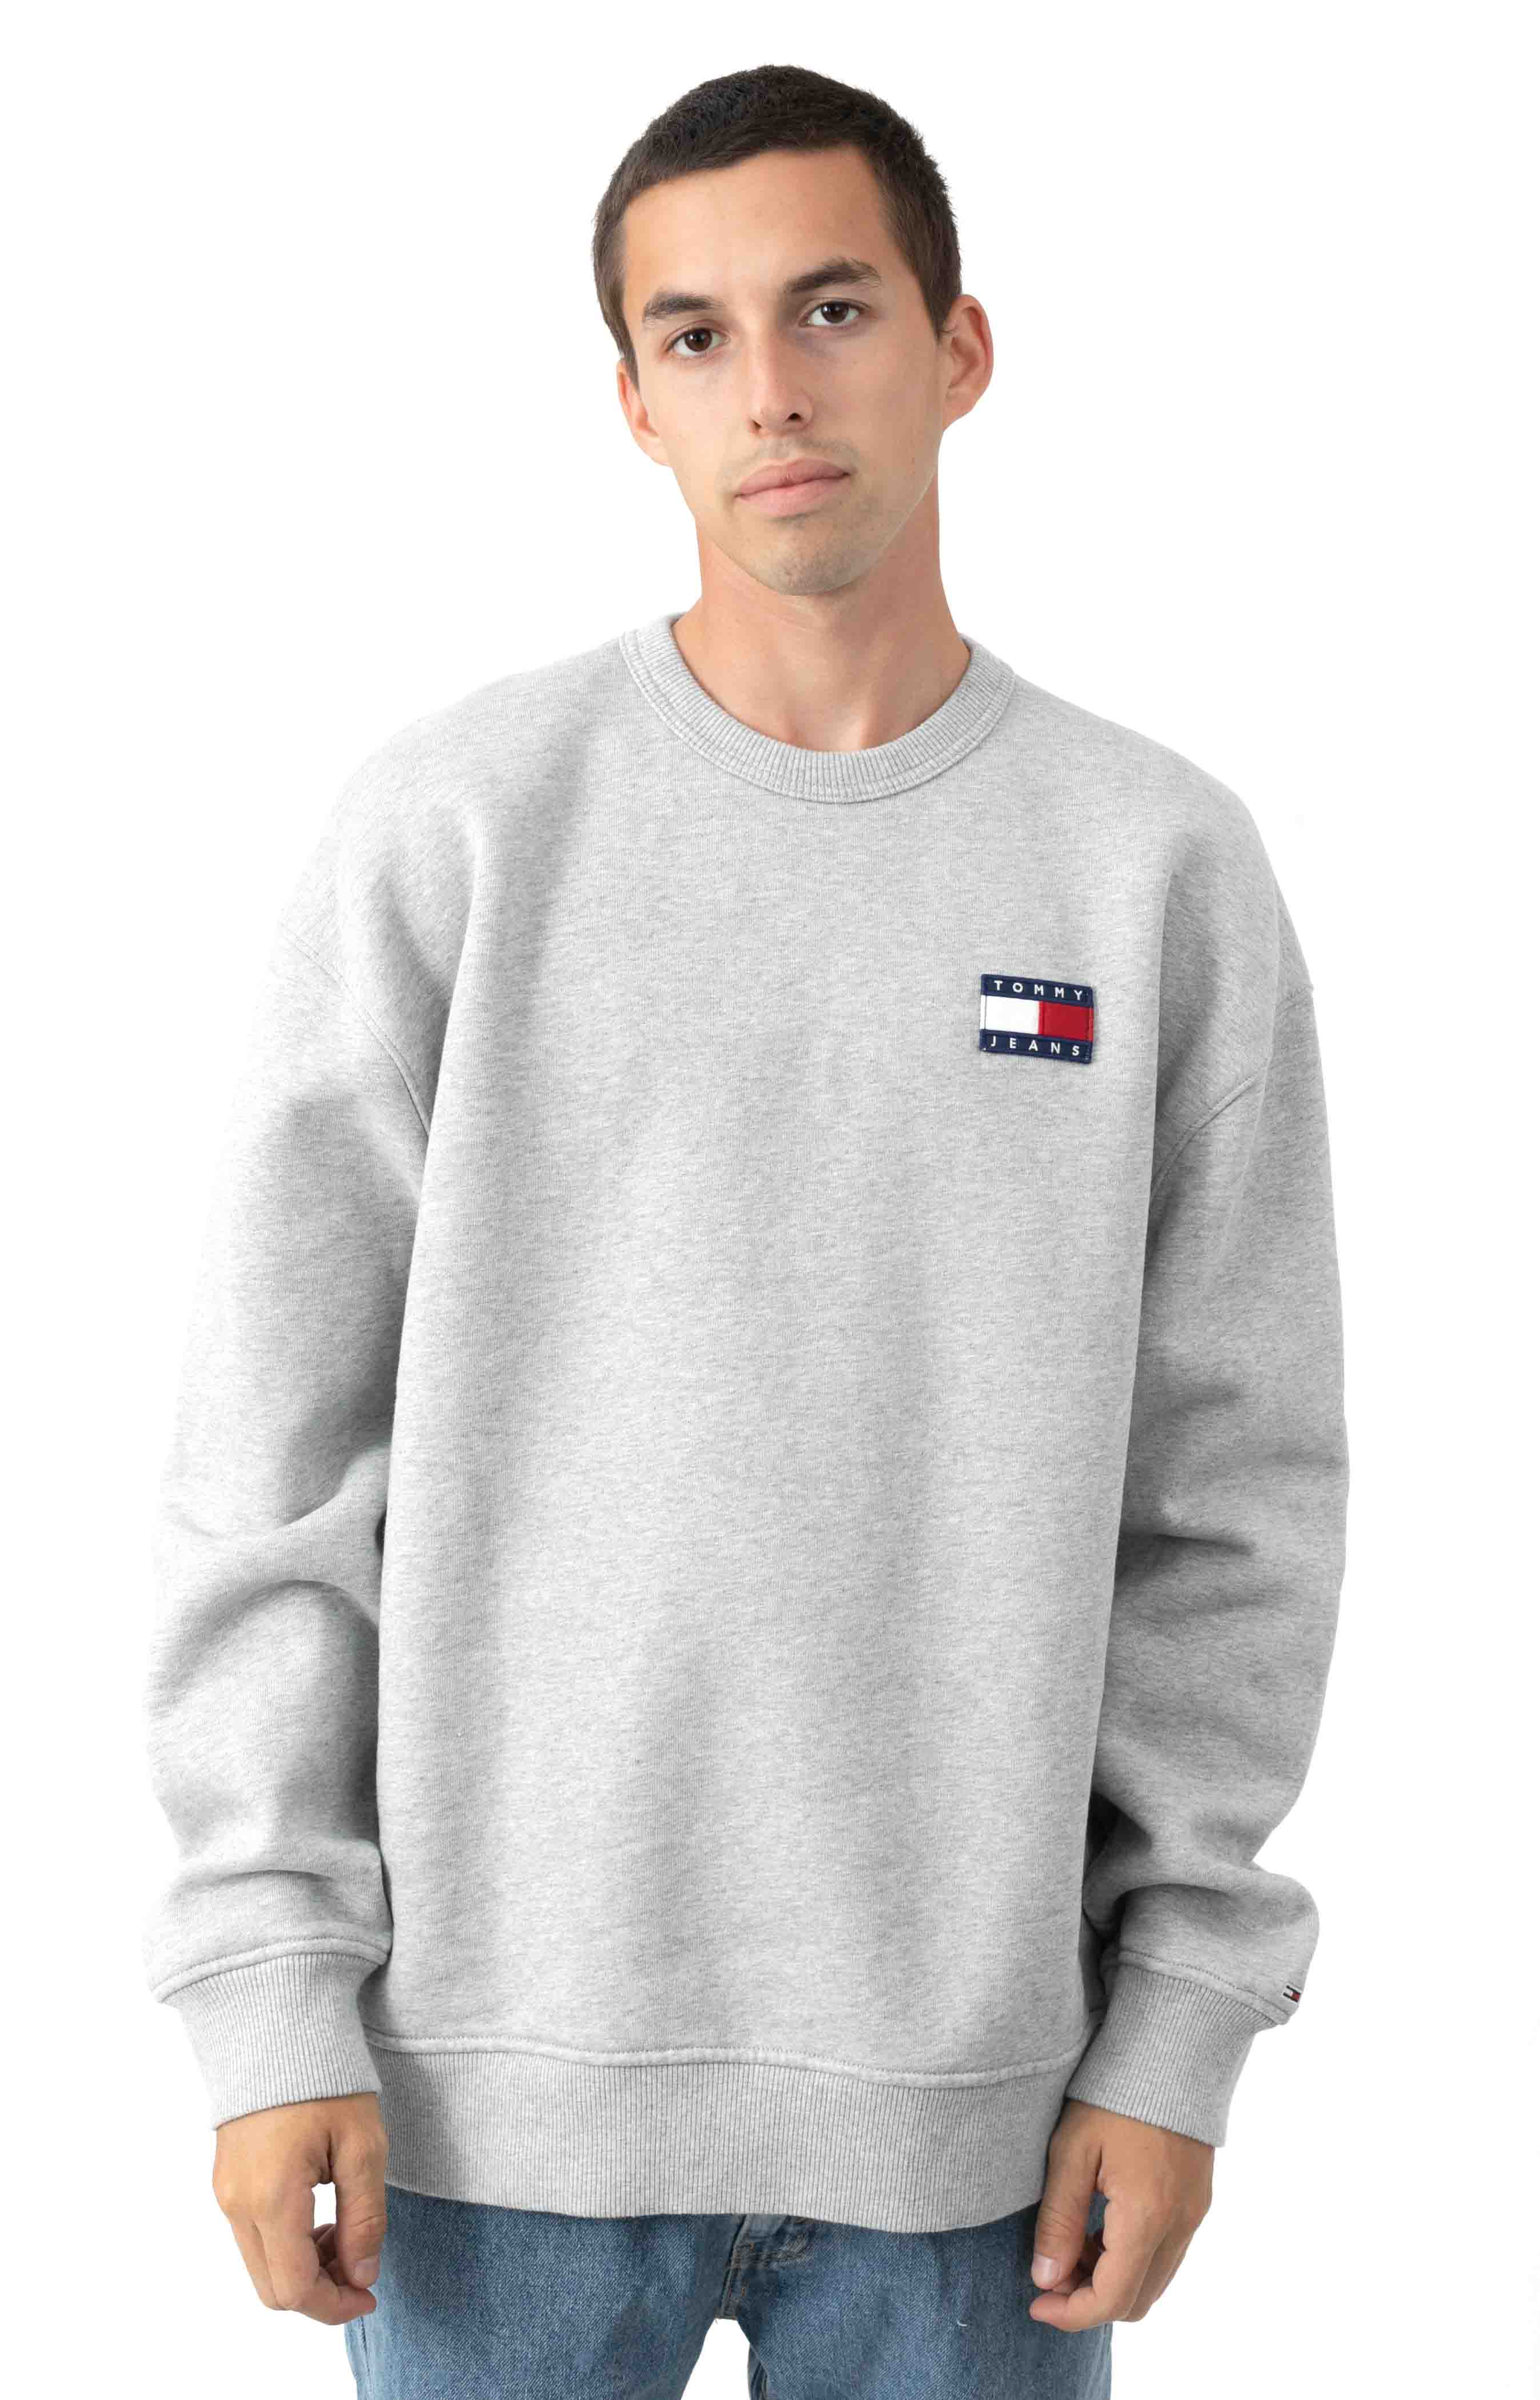 Jai Badge Sweatshirt - Metal Grey